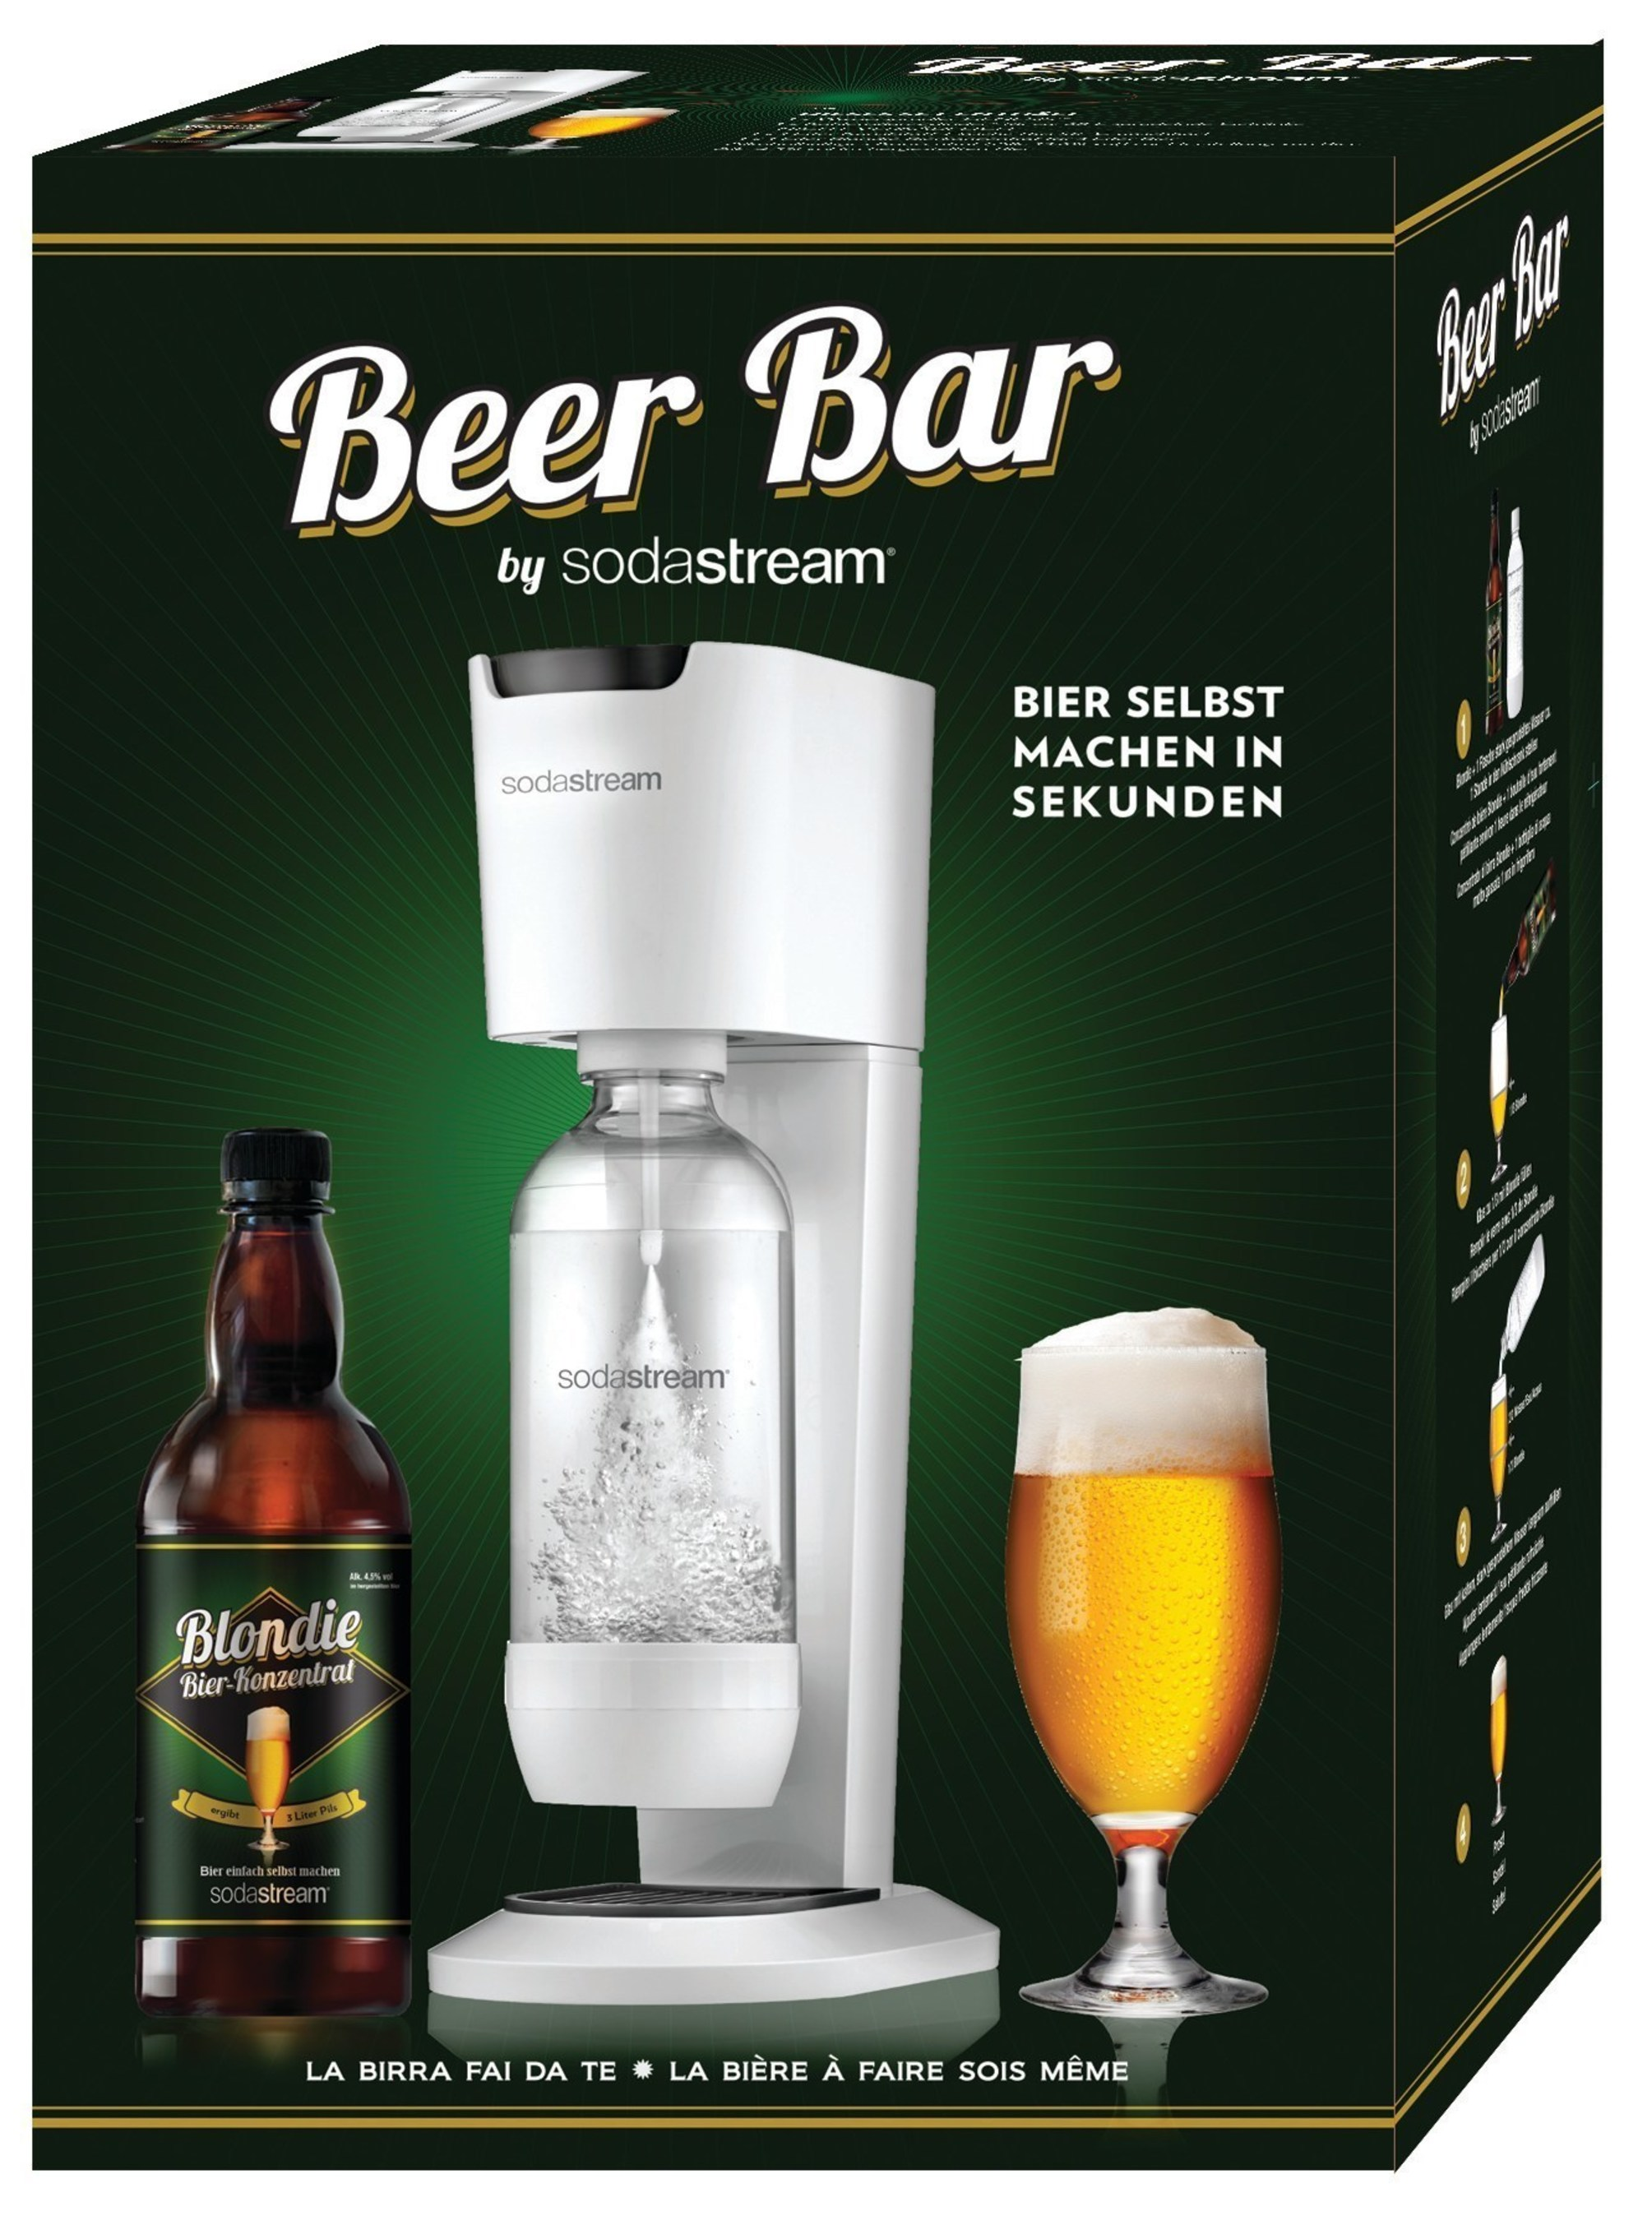 SodaStream launches its new homemade beer system, the Beer Bar